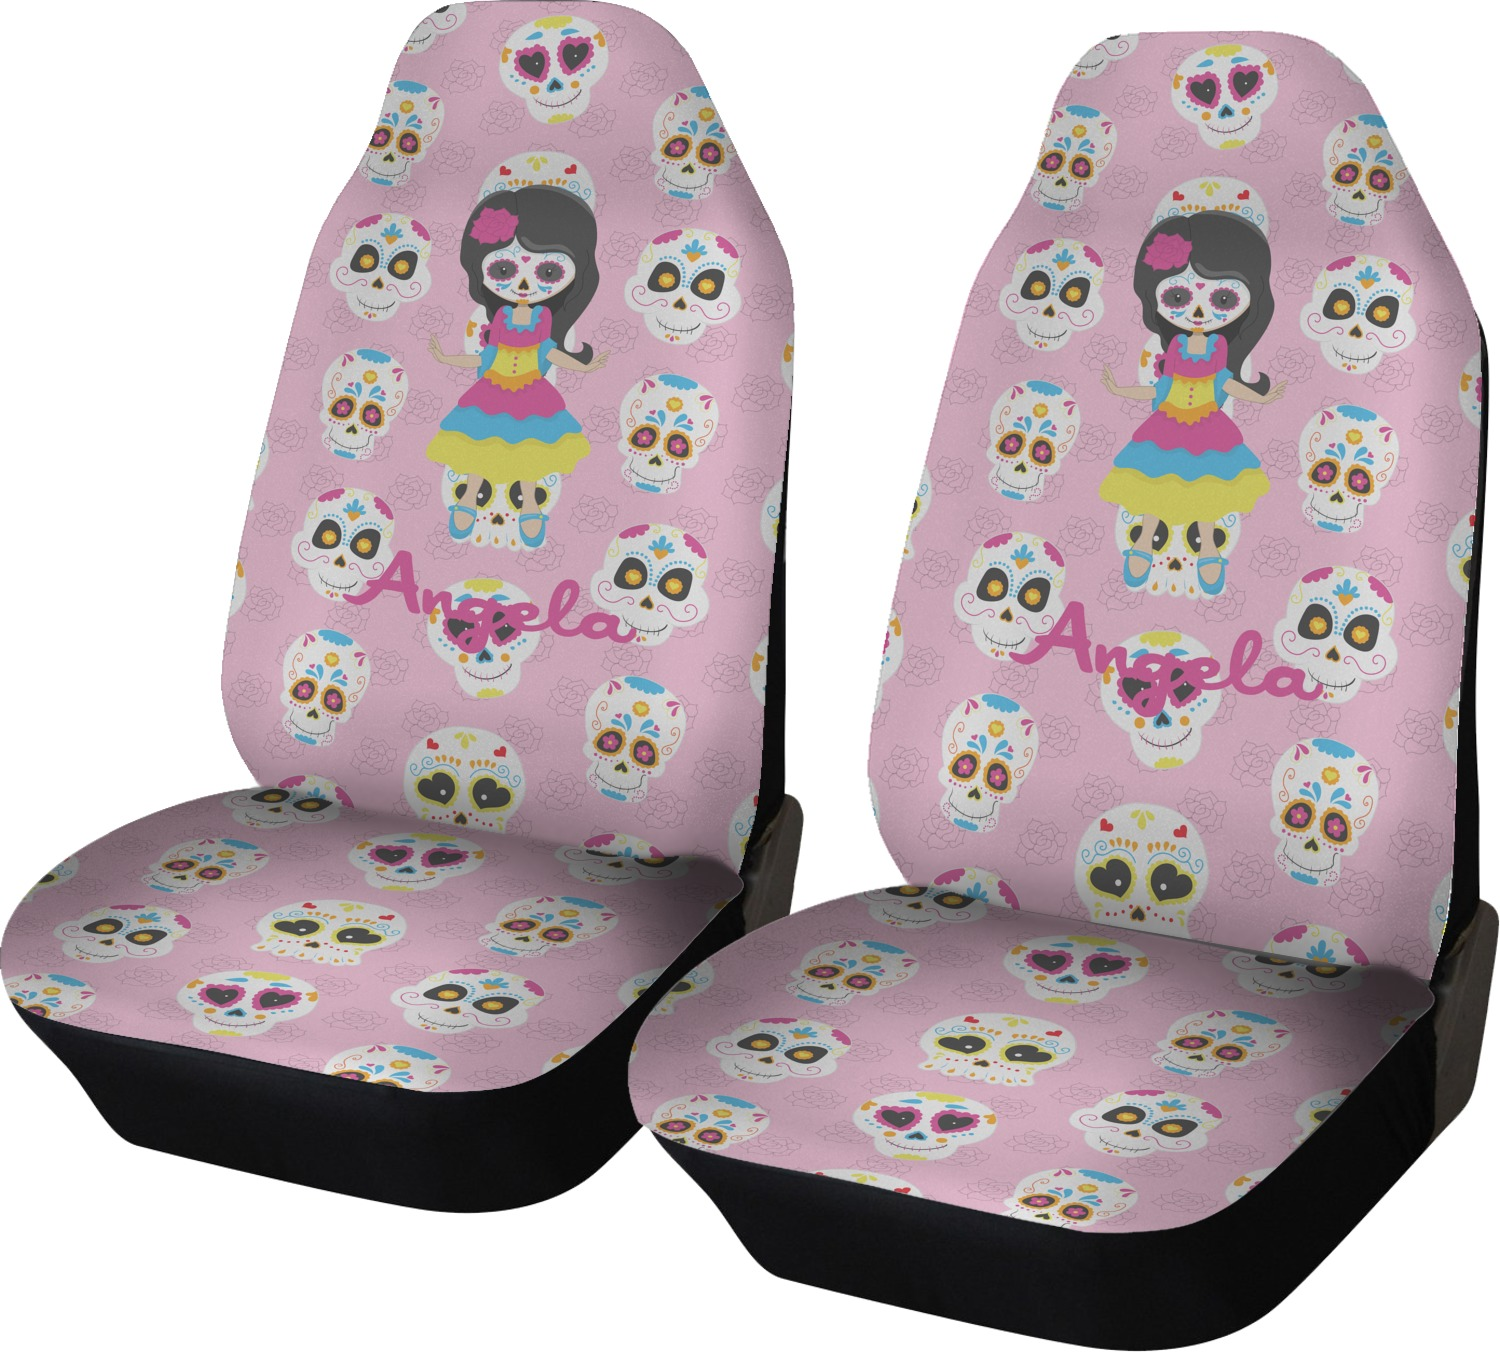 Miraculous Kids Sugar Skulls Car Seat Covers Set Of Two Personalized Machost Co Dining Chair Design Ideas Machostcouk